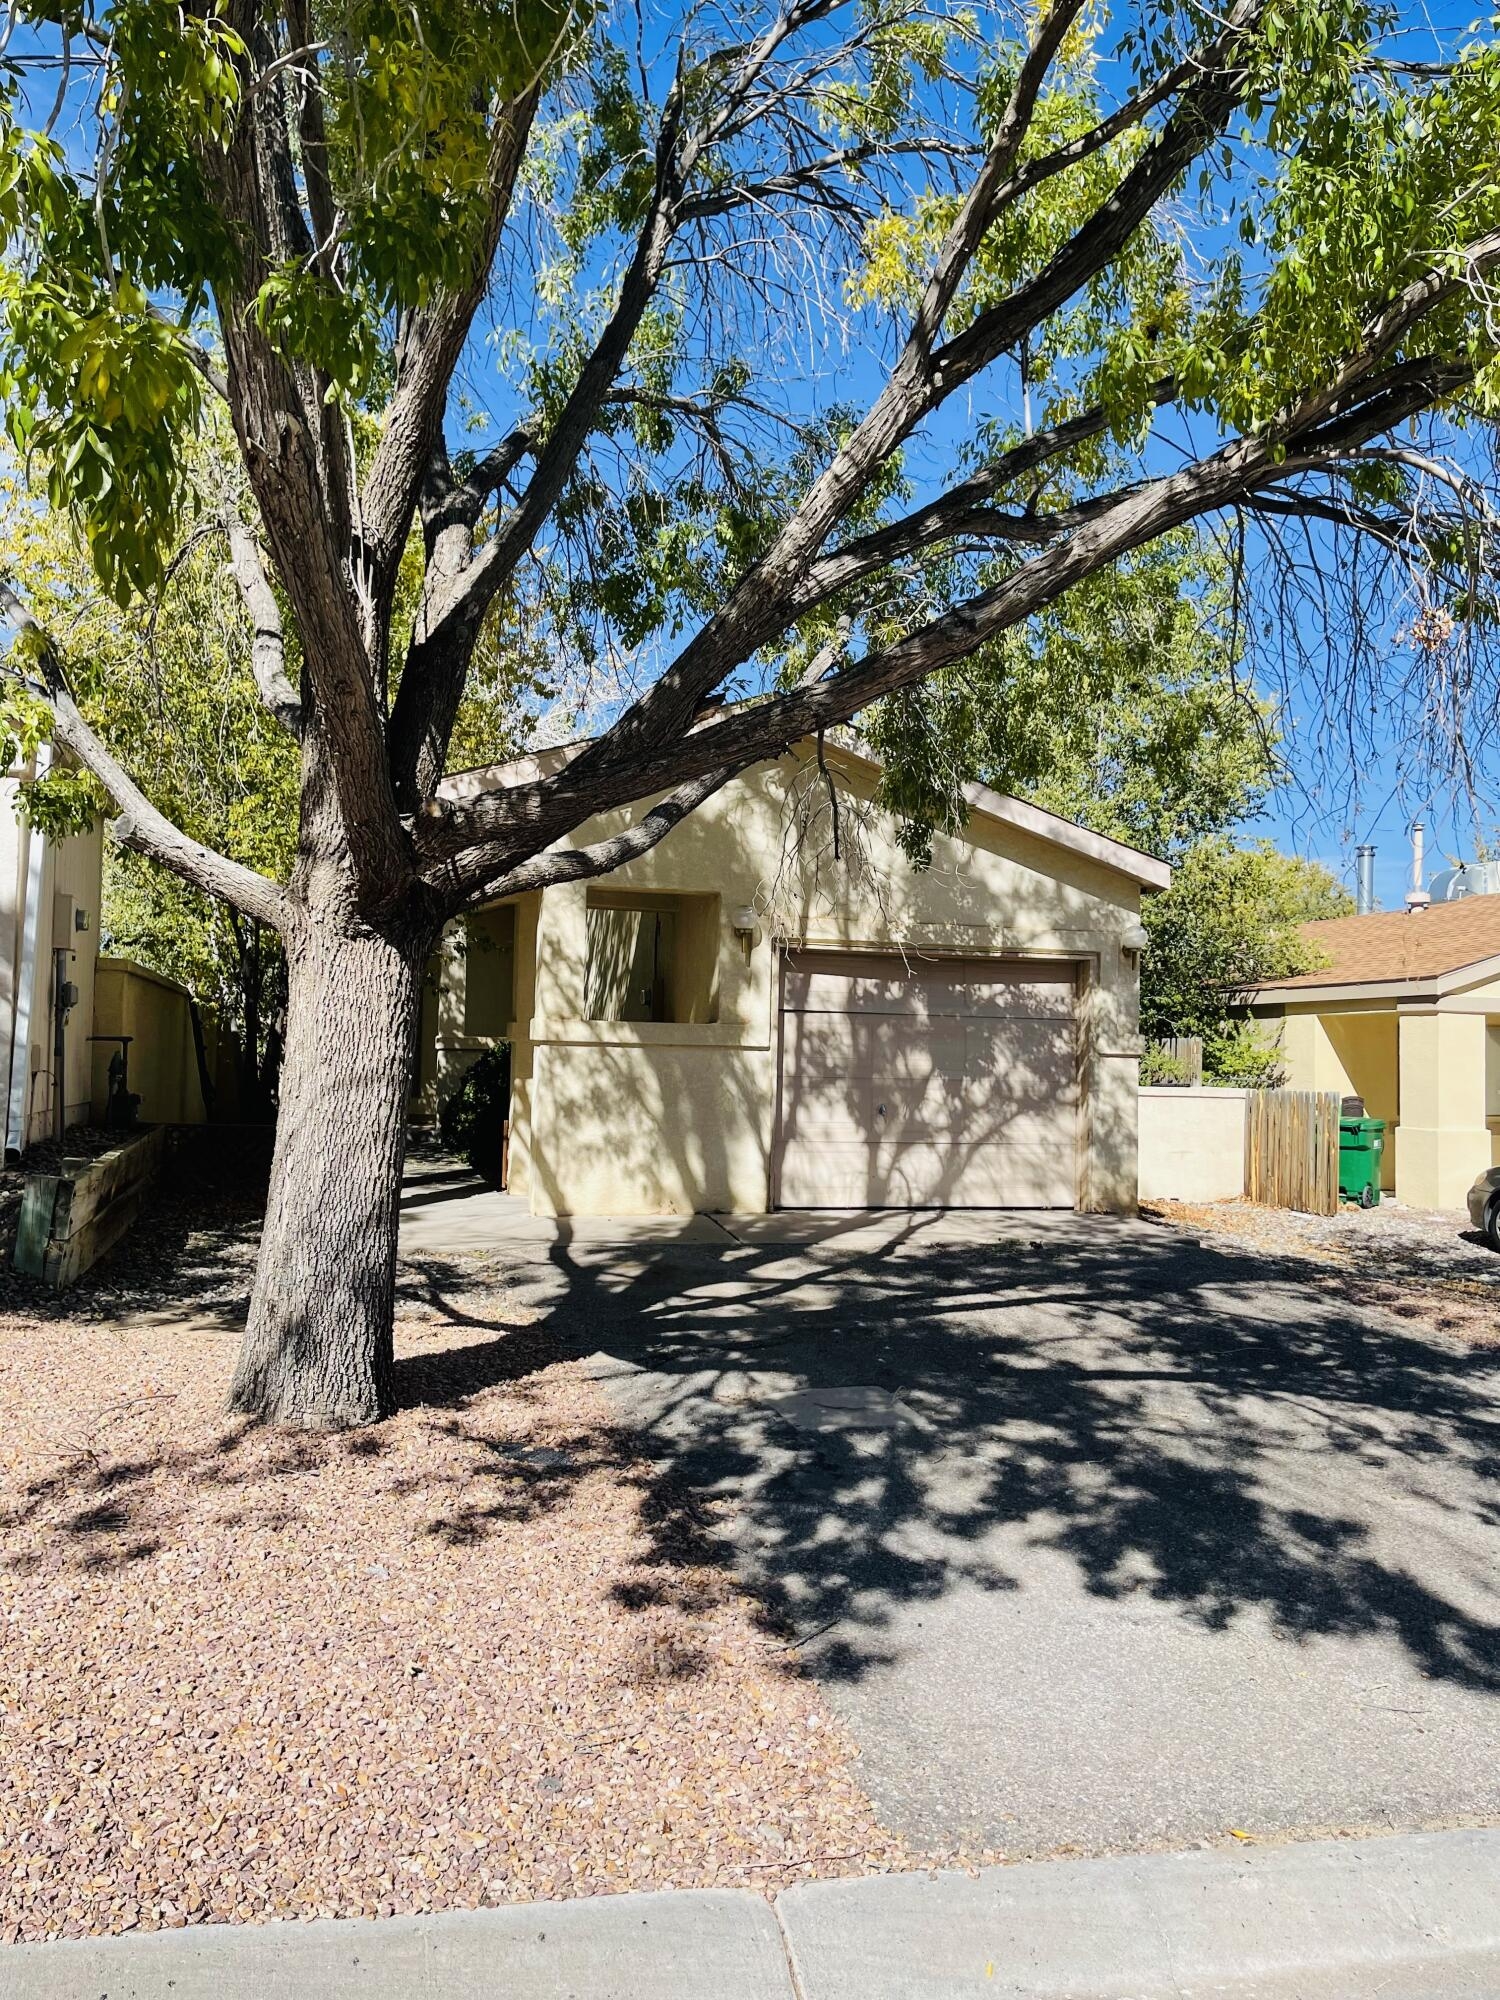 Move in ready. Property has 2 bedrooms, 2 bathrooms. Walk in Master Closet, courtyard in front, spacious backyard and a 1 car garage. Newer water heater and carpet in bedrooms and living area.